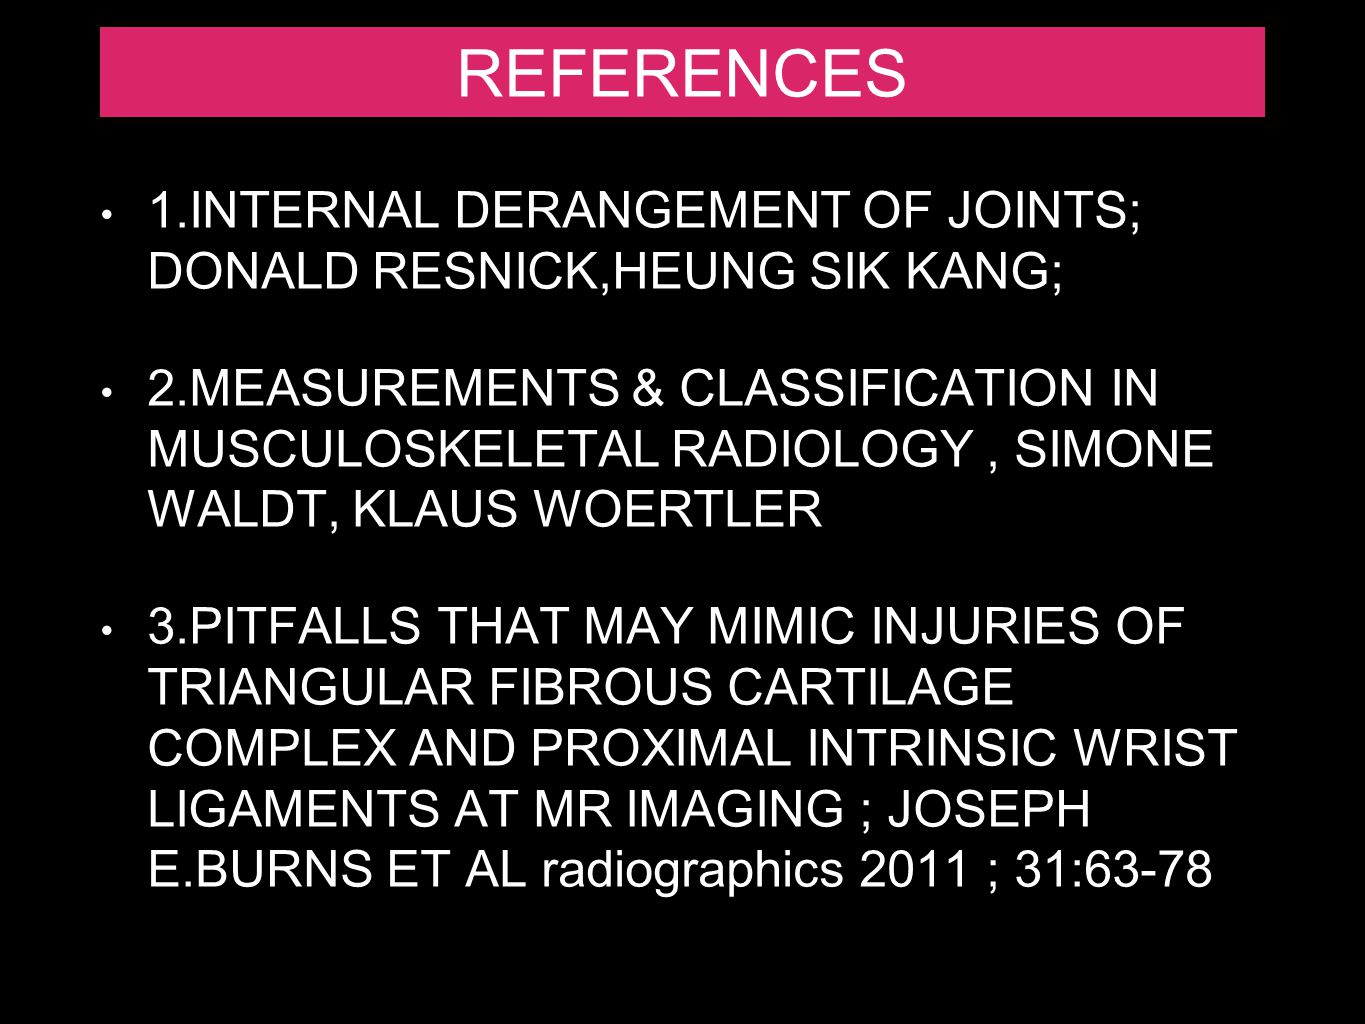 REFERENCES 1.INTERNAL DERANGEMENT OF JOINTS; DONALD RESNICK,HEUNG SIK KANG;